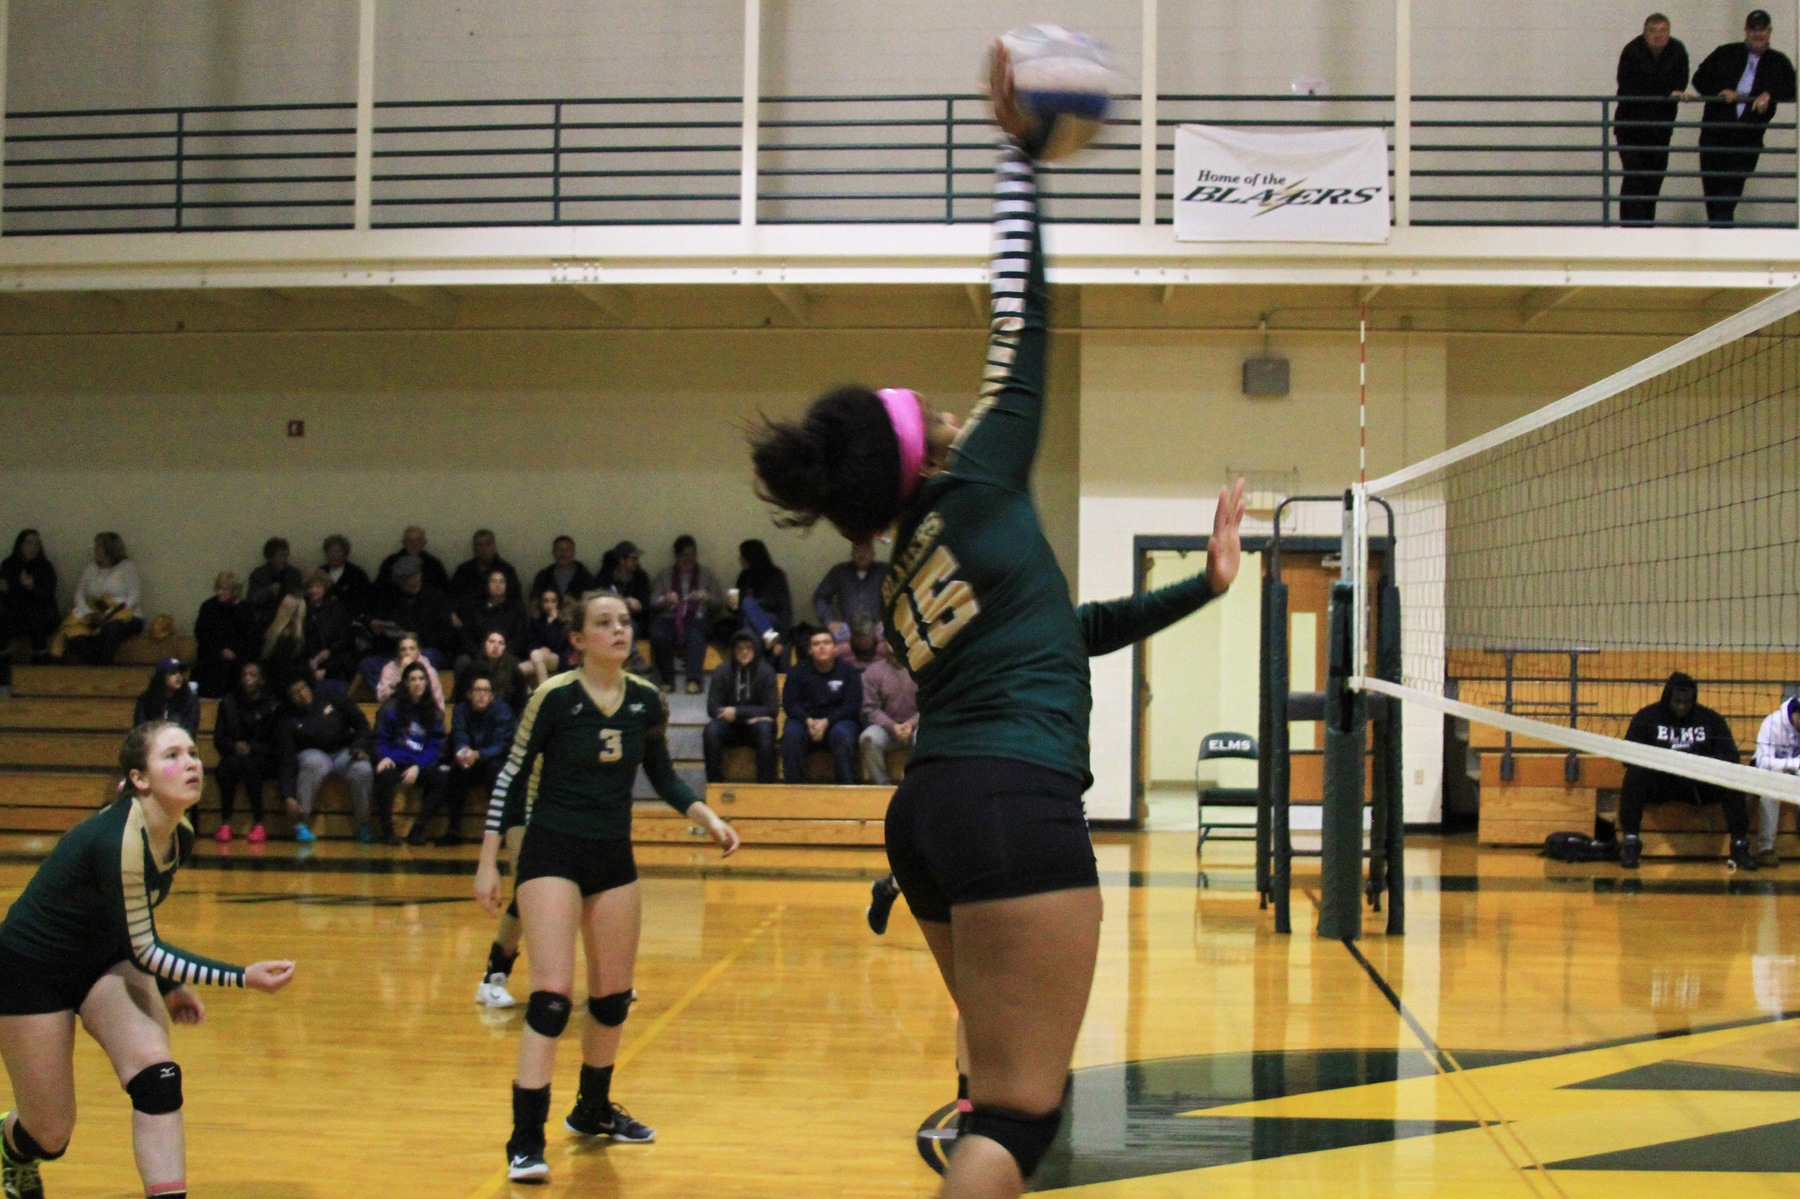 Southern Vermont Upsets Elms In NECC Volleyball Semifinal